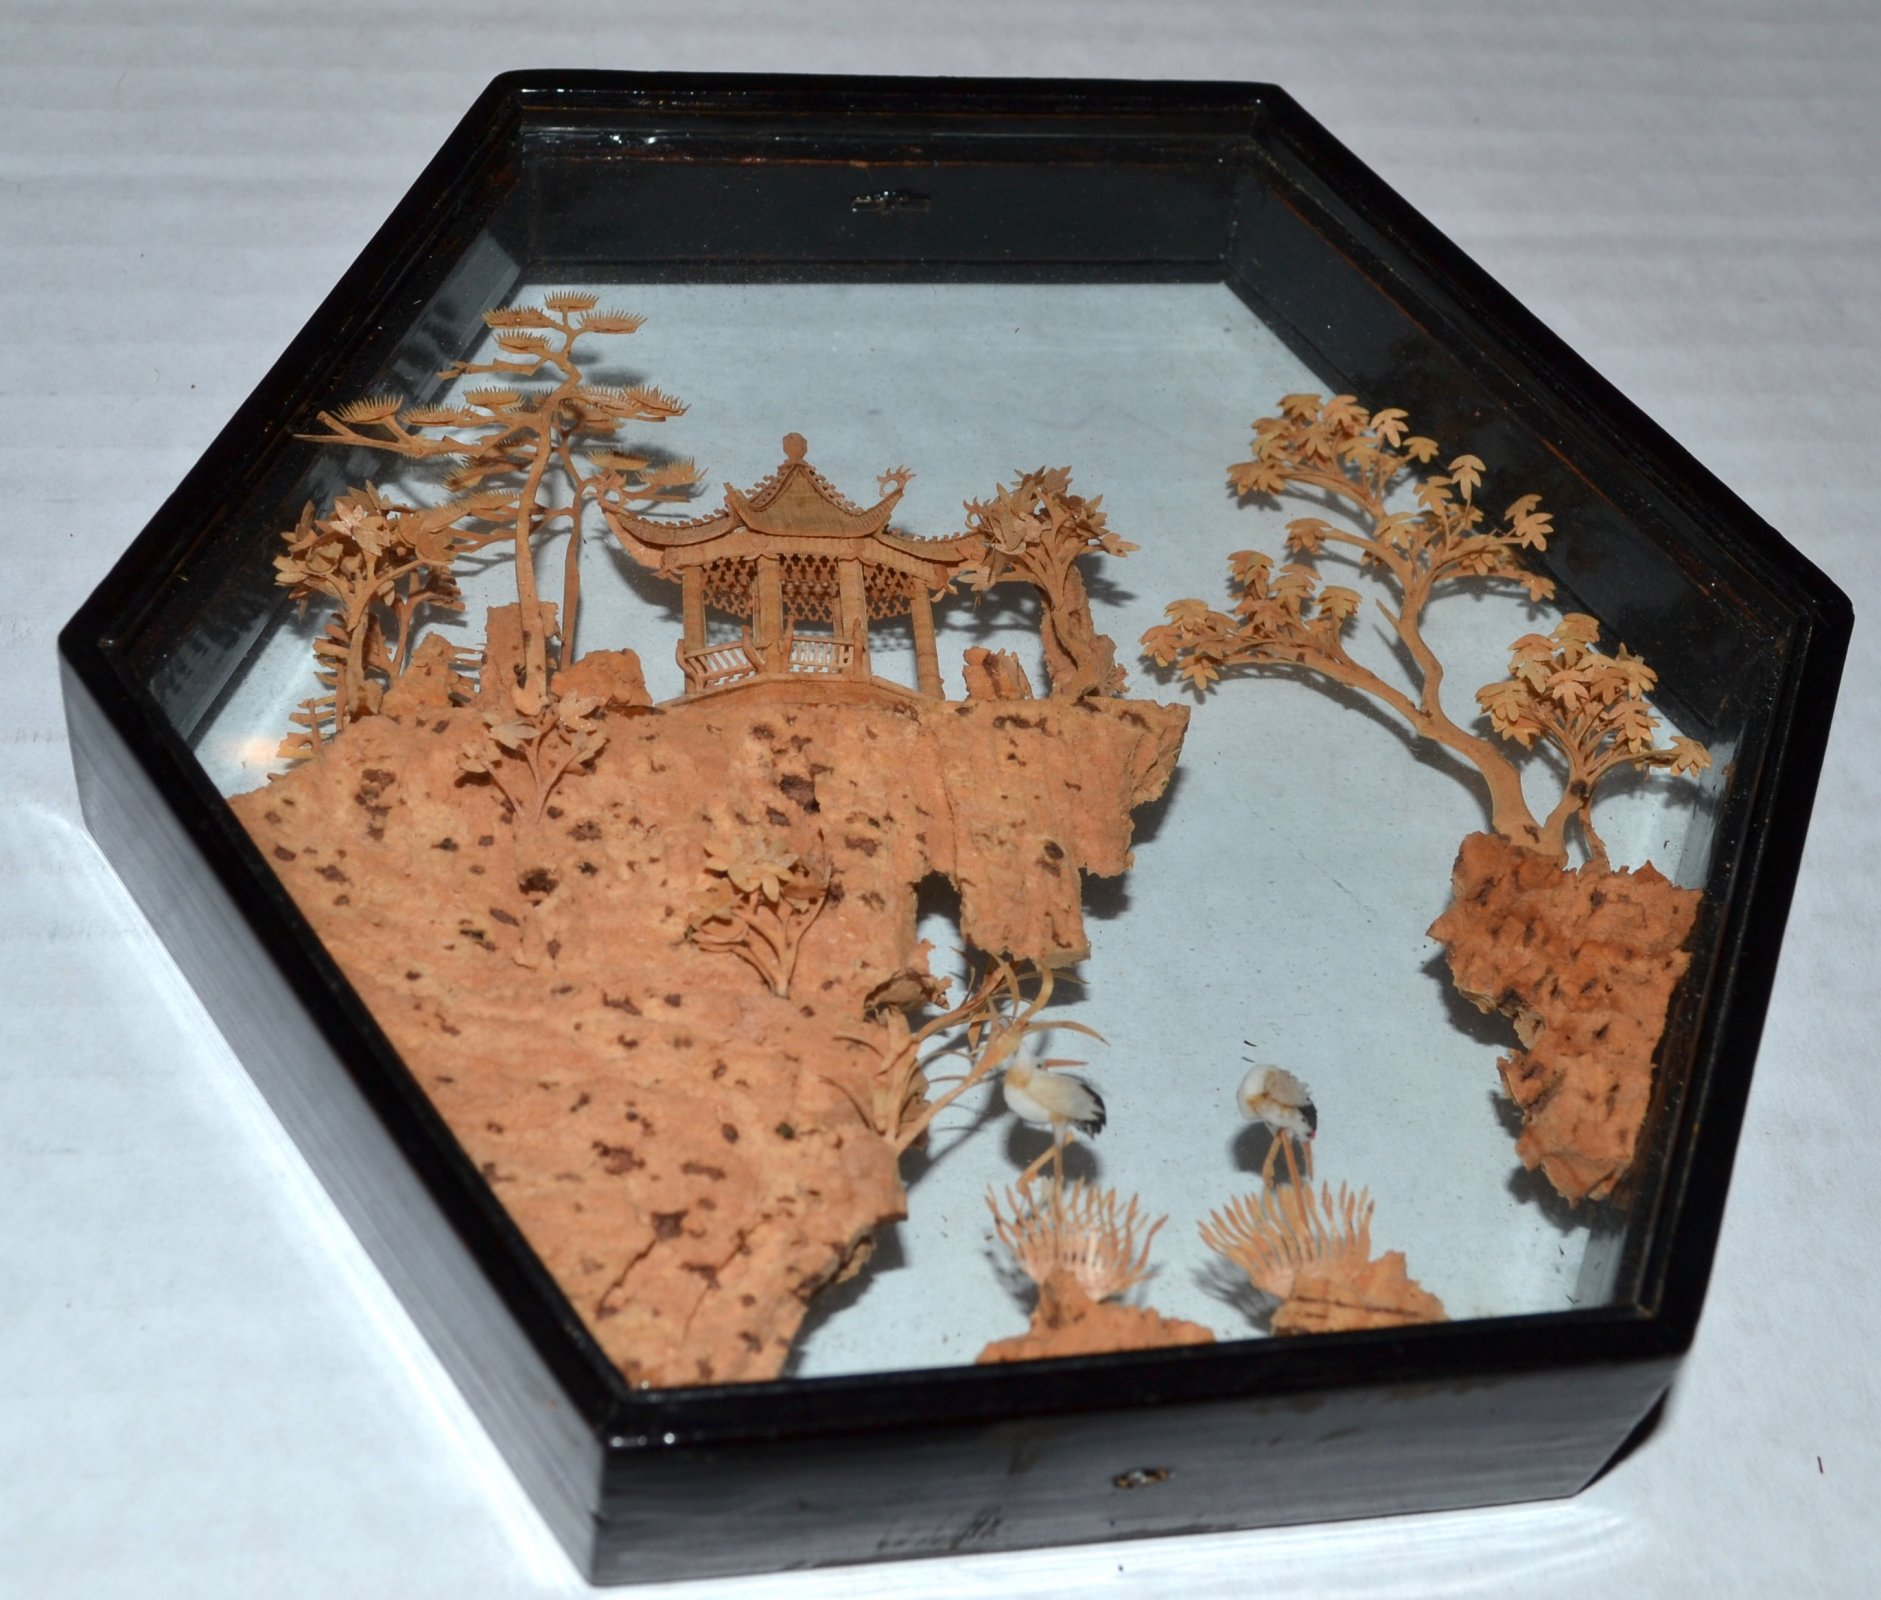 Chinese cork carving inside glass and wood